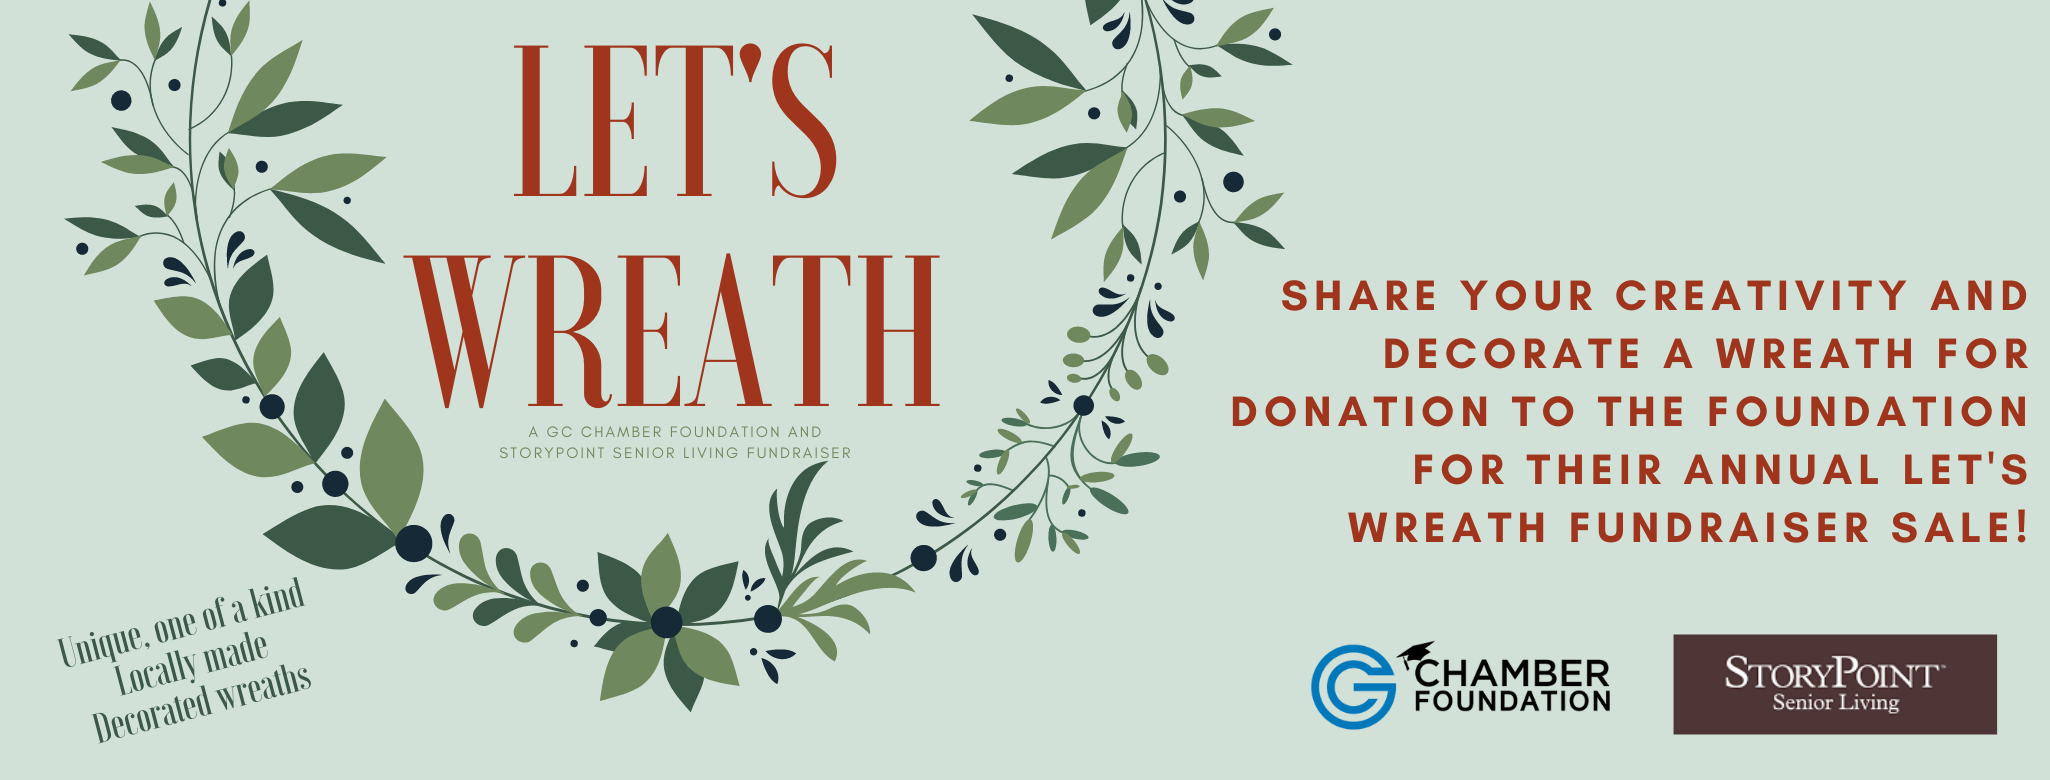 2021 of FB Banner GC Foundation Let's Wreath Flyer